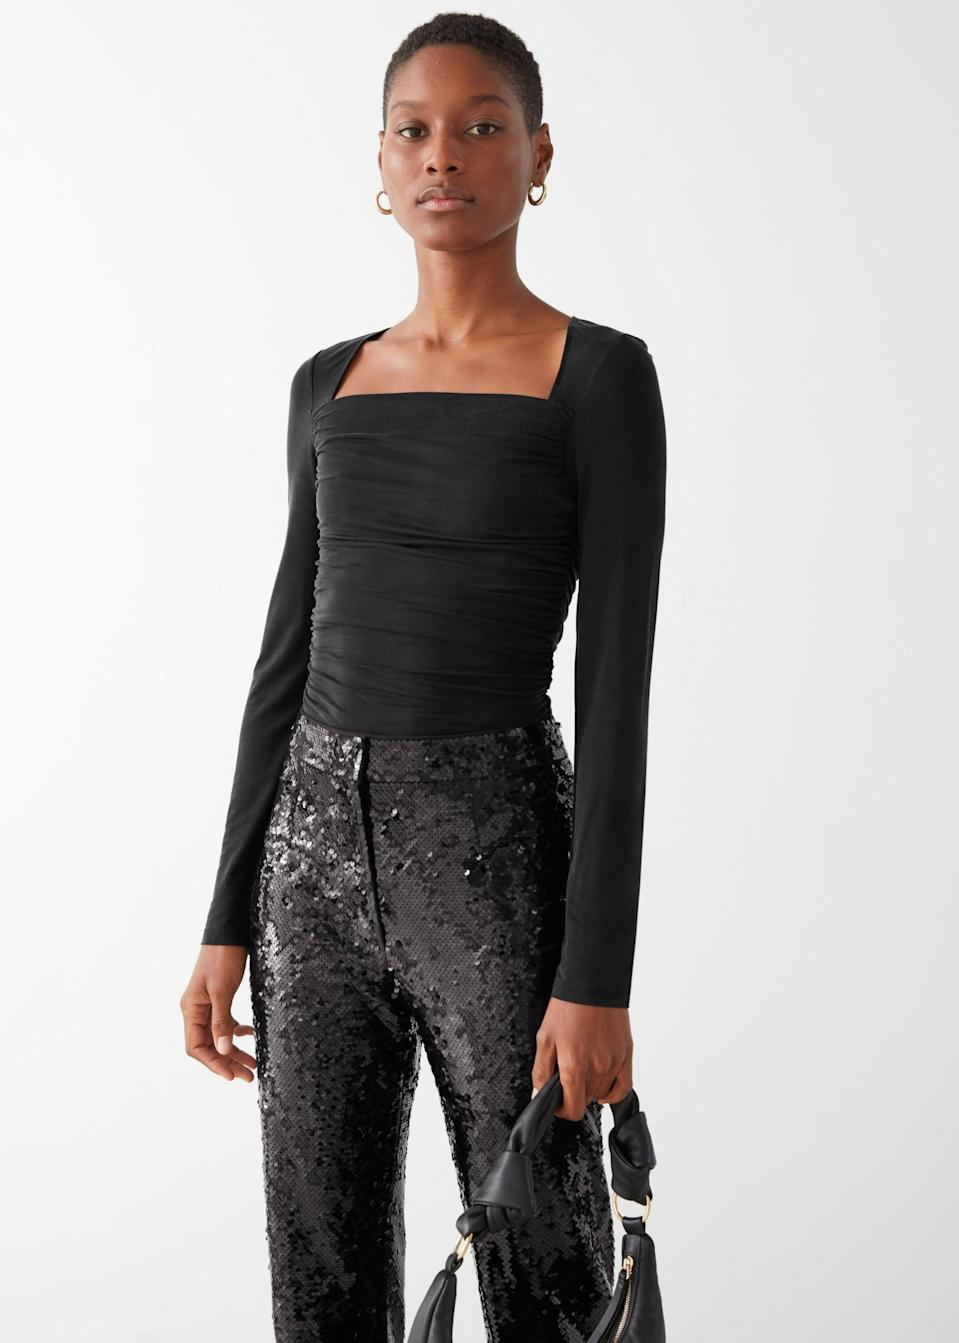 """<p>""""The fabric of this <span>&amp; Other Stories Draped Cupro Top</span> ($59) puts it on the more sophisticated side, but it can easily be dressed down with some light blue wash denim jeans or up when tucked in a slip skirt or textured leather pants."""" - Shelcy Joseph, assistant editor, Shop</p>"""